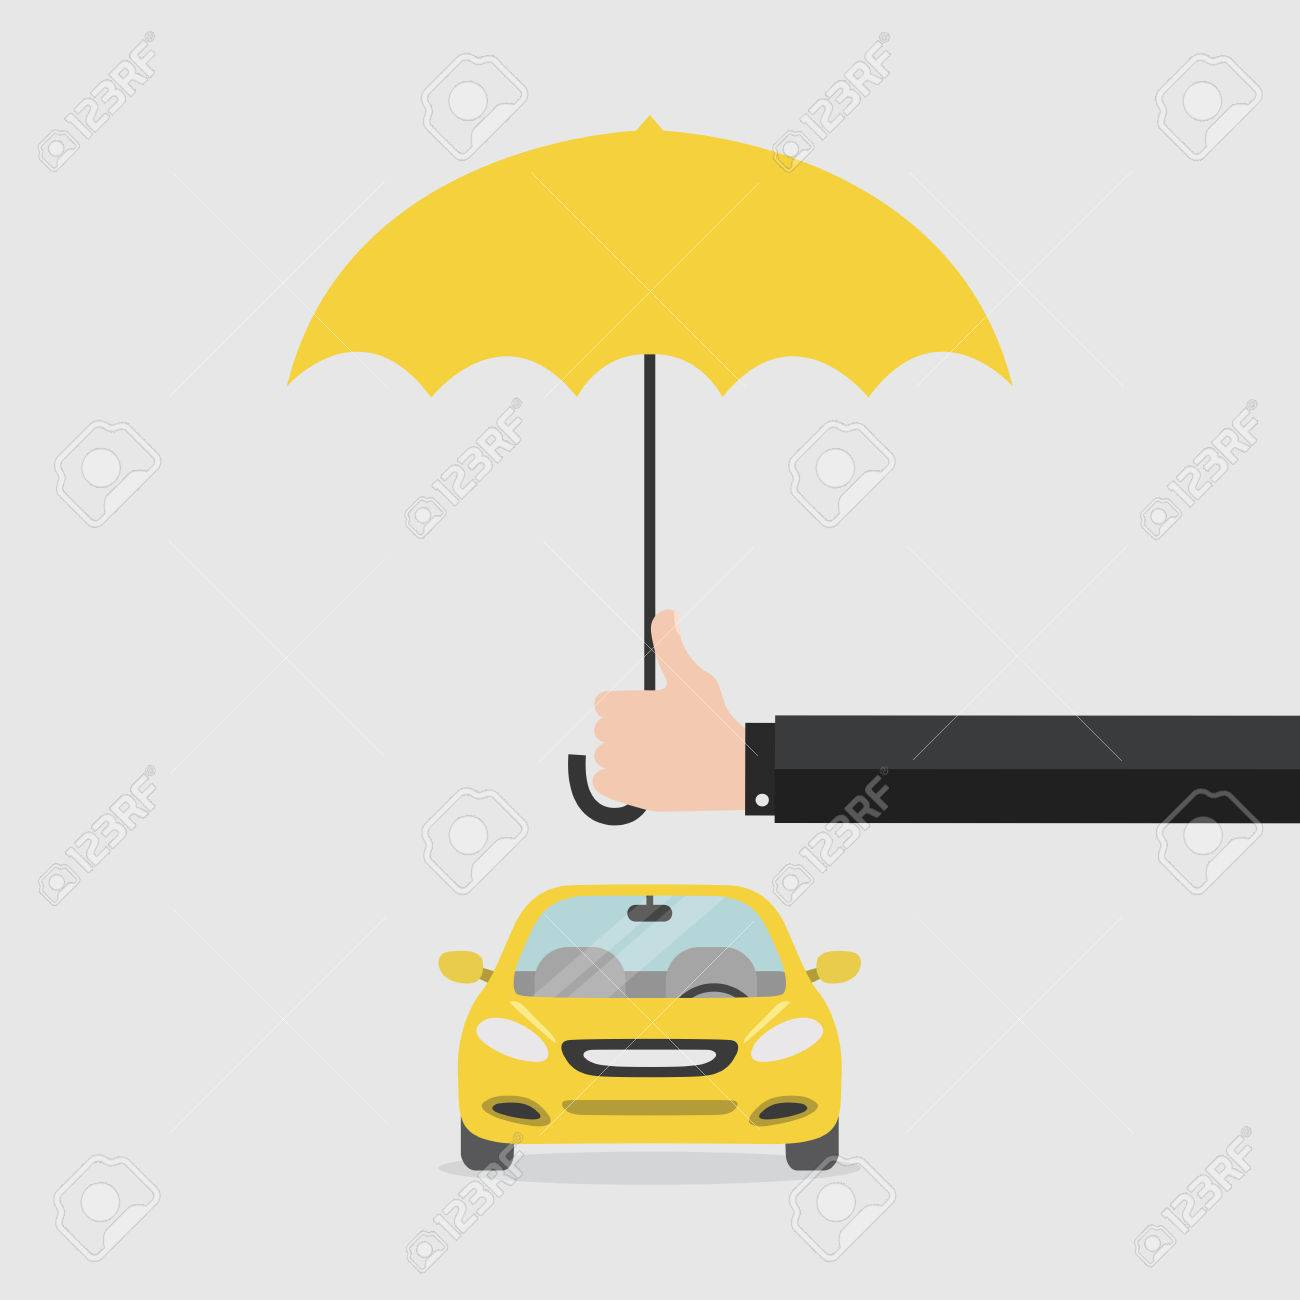 Hand Insurer With An Umbrella That Protects The Car Safety Concept